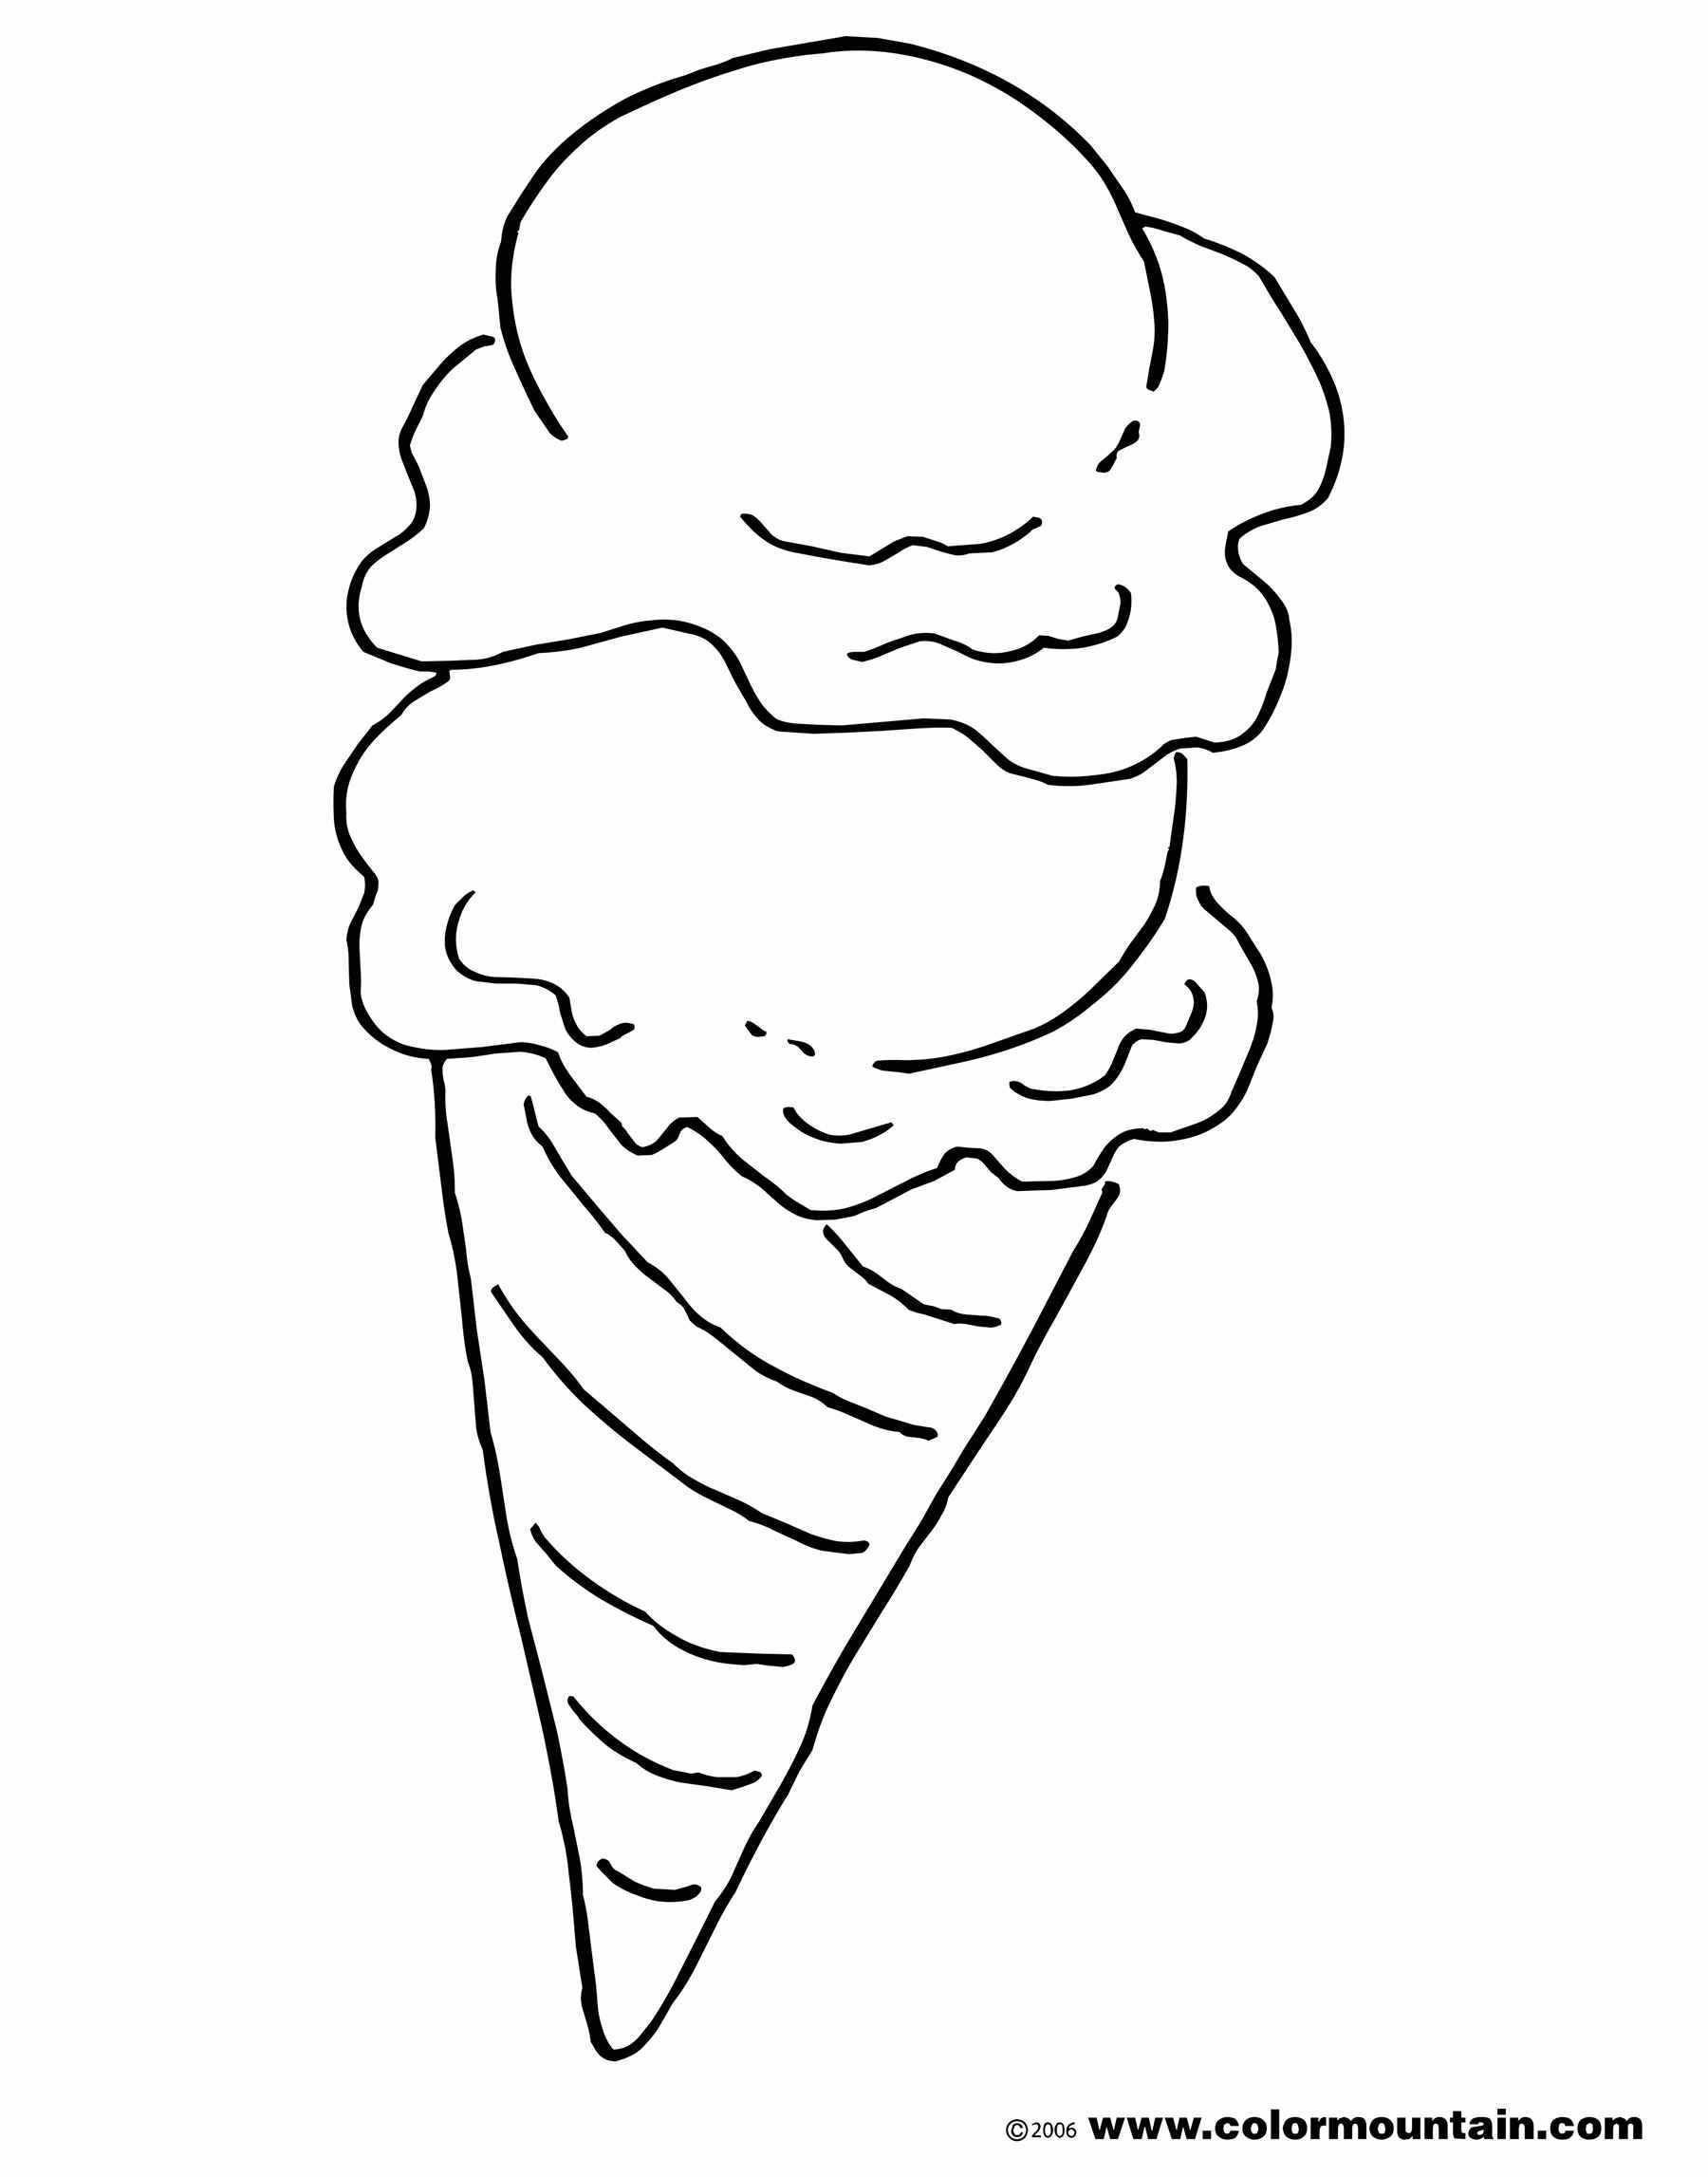 Happy Ice Cream Coloring Page Happy Page Colouringbook Ice Cream Coloring Pages Free Coloring Pages Coloring Pages Inspirational